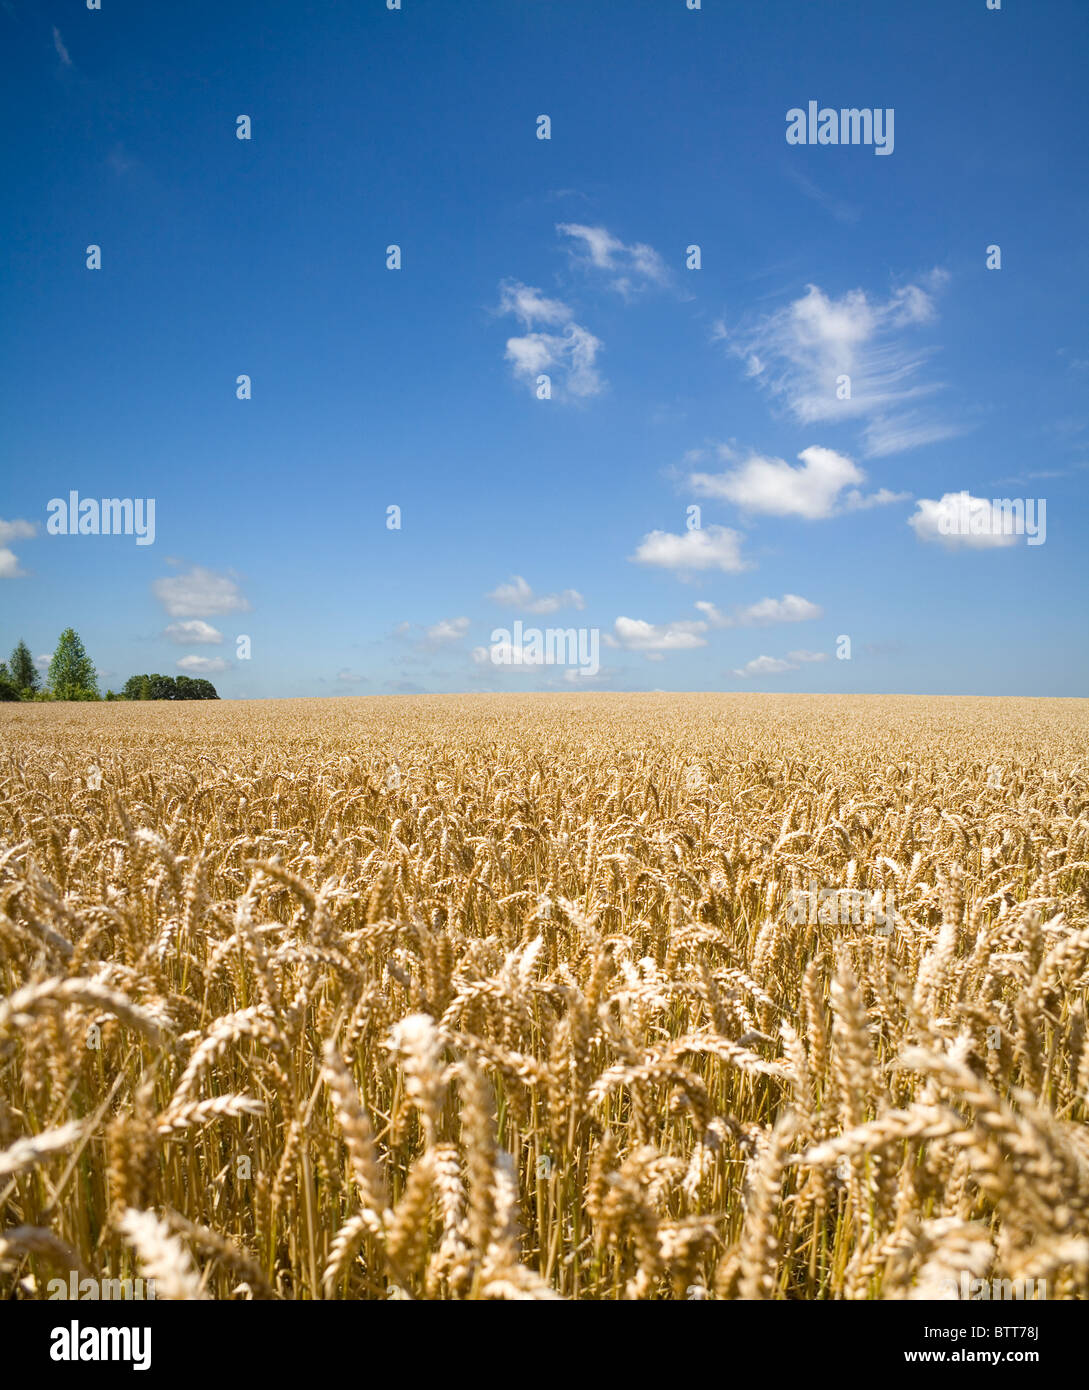 A field of ripe wheat under a clear summer sky - Stock Image